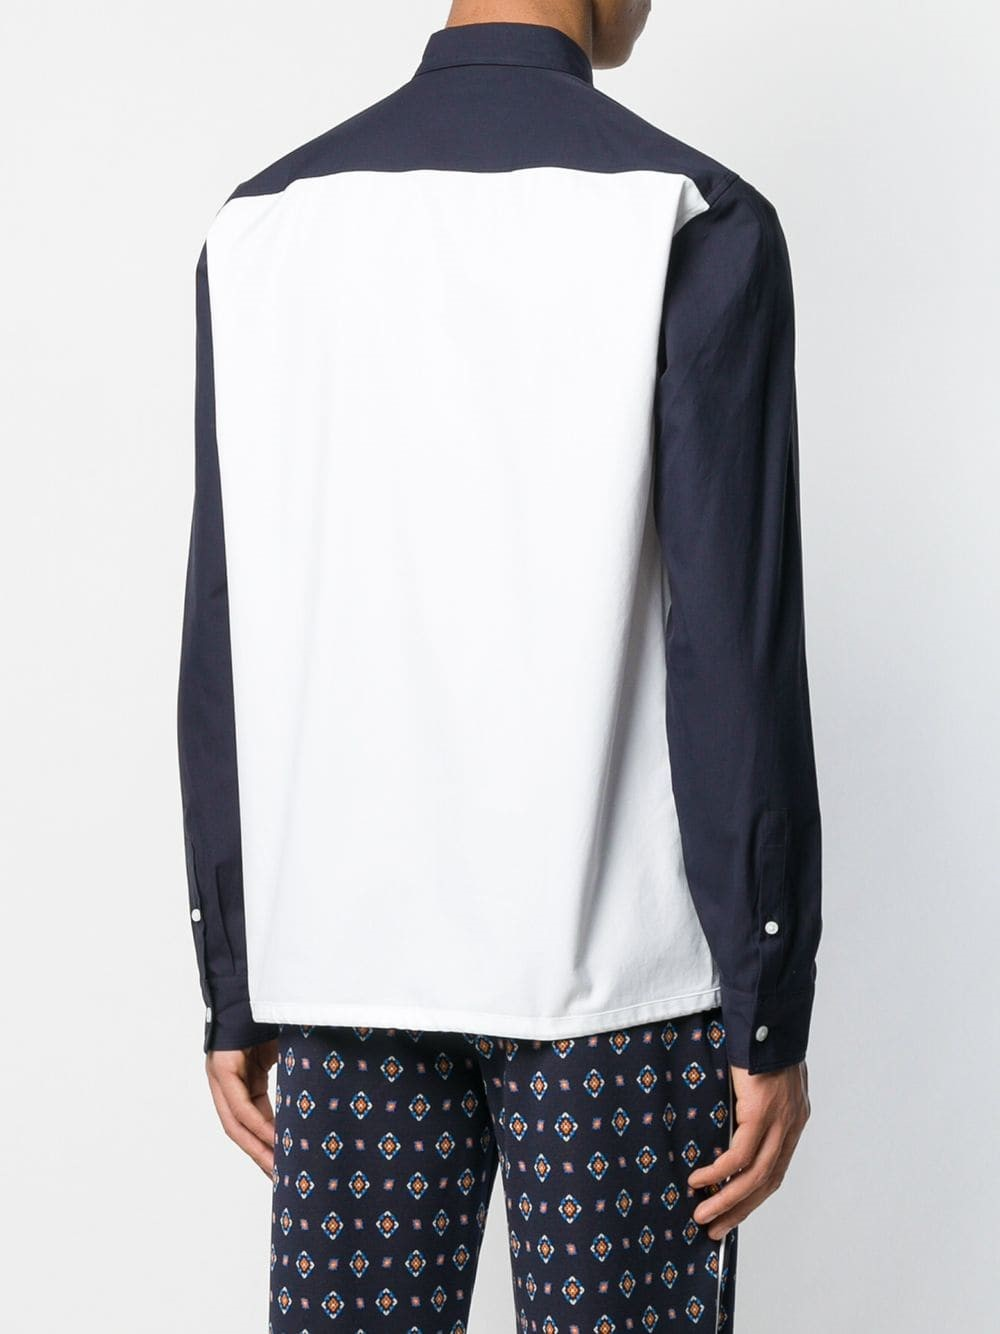 c25fac44 kenzo SHIRT available on montiboutique.com - 27907